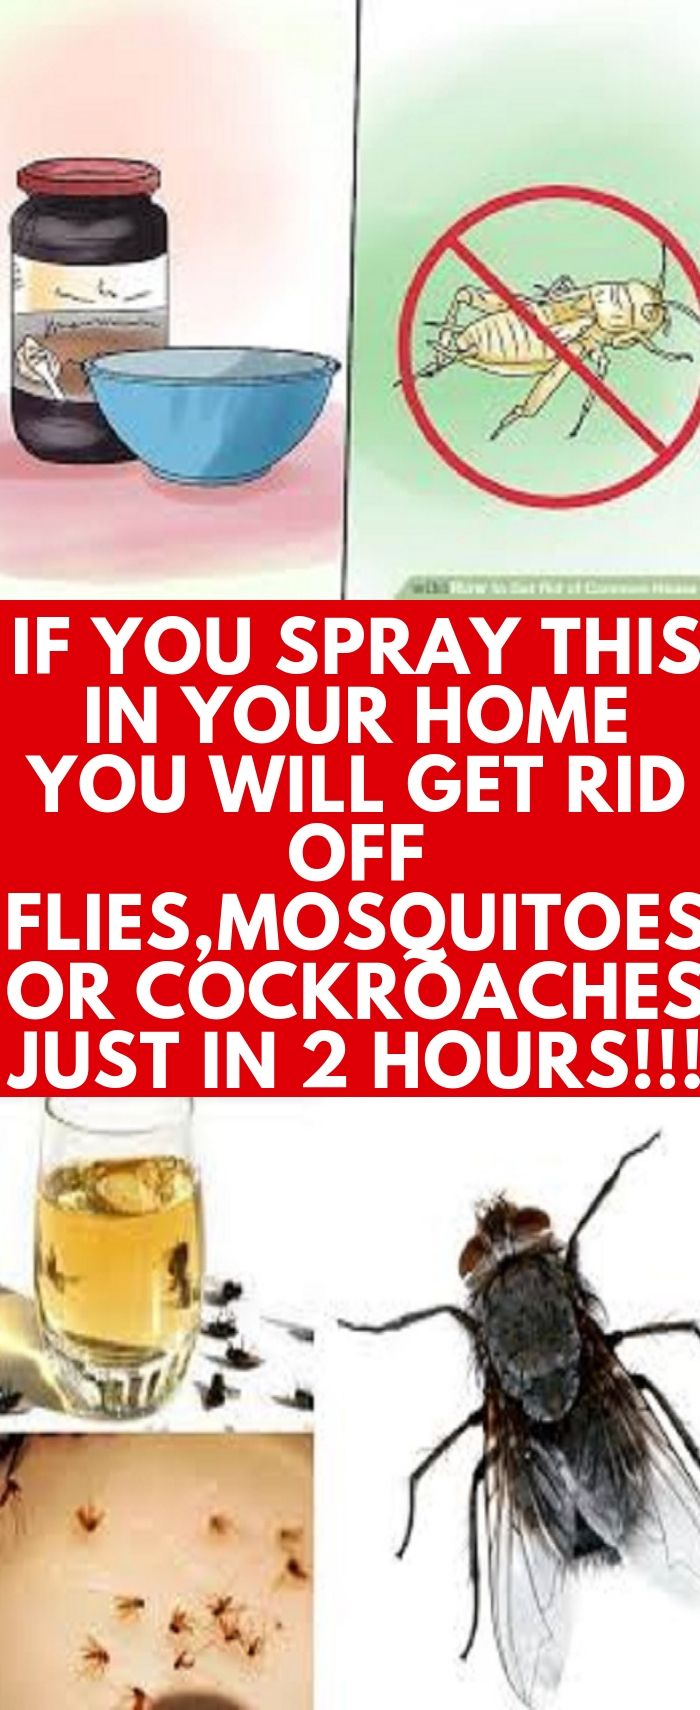 How To Get Rid Of All The Flies In My Backyard - Backyard ...